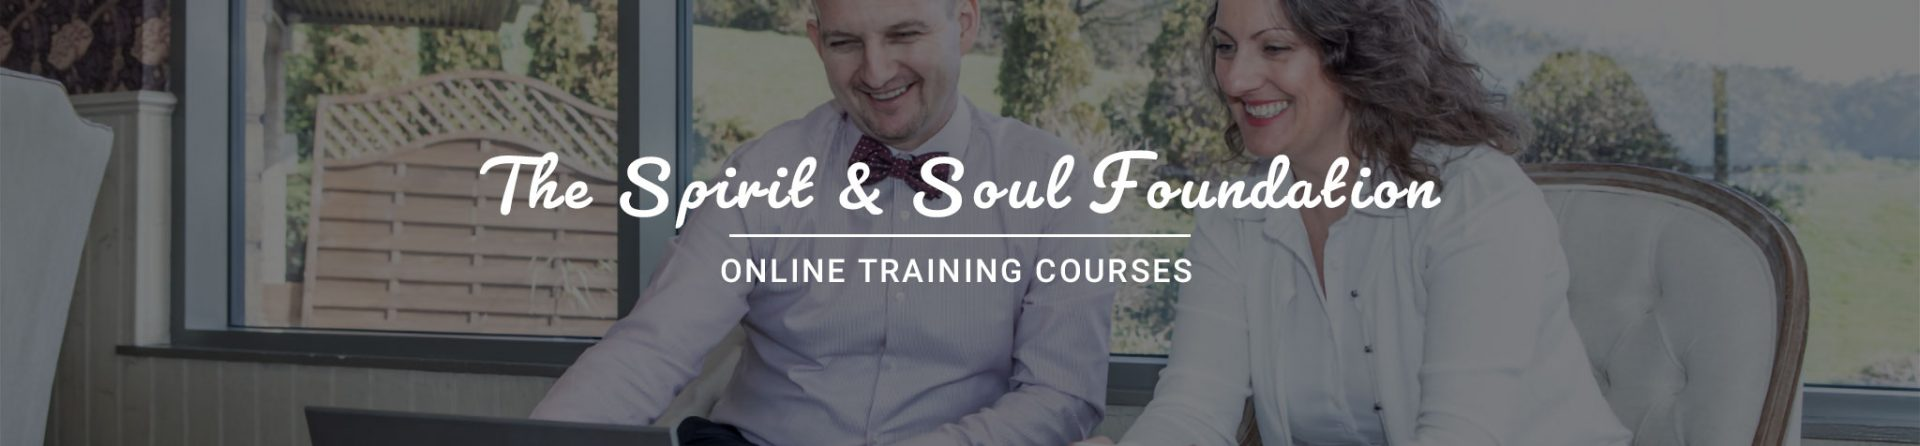 The Spirit and Soul Foundation - Online Training Courses